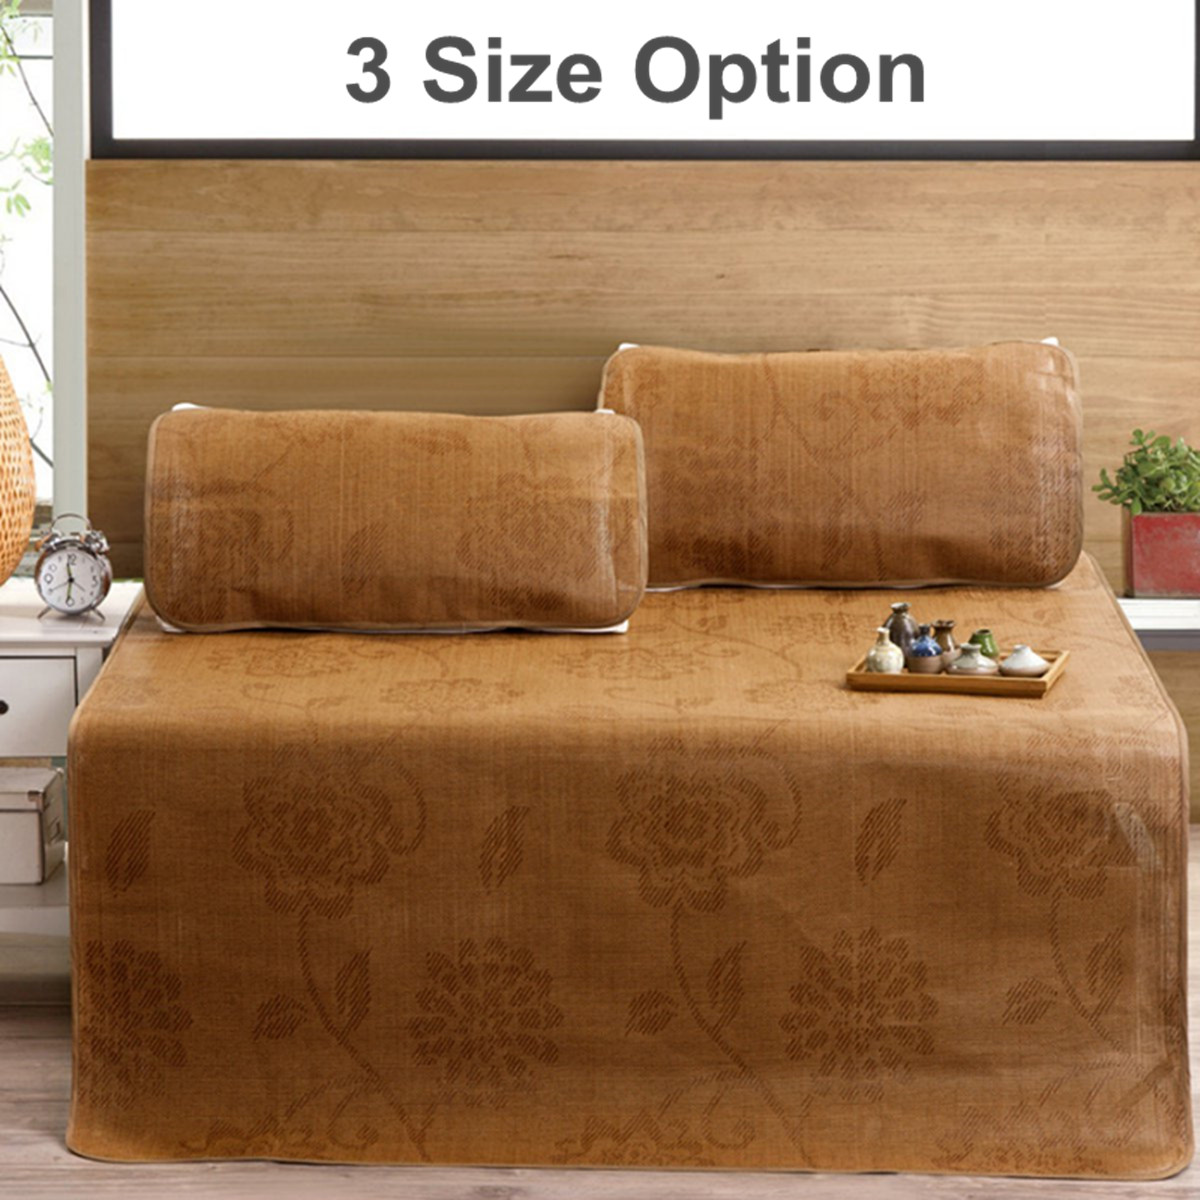 Summer 3PCS/Set Rattan Mat Mattresses Sleeping Cooling Bed Cover Pillowcases Bedding Home Textile 3 Sizes Natural Bamboo